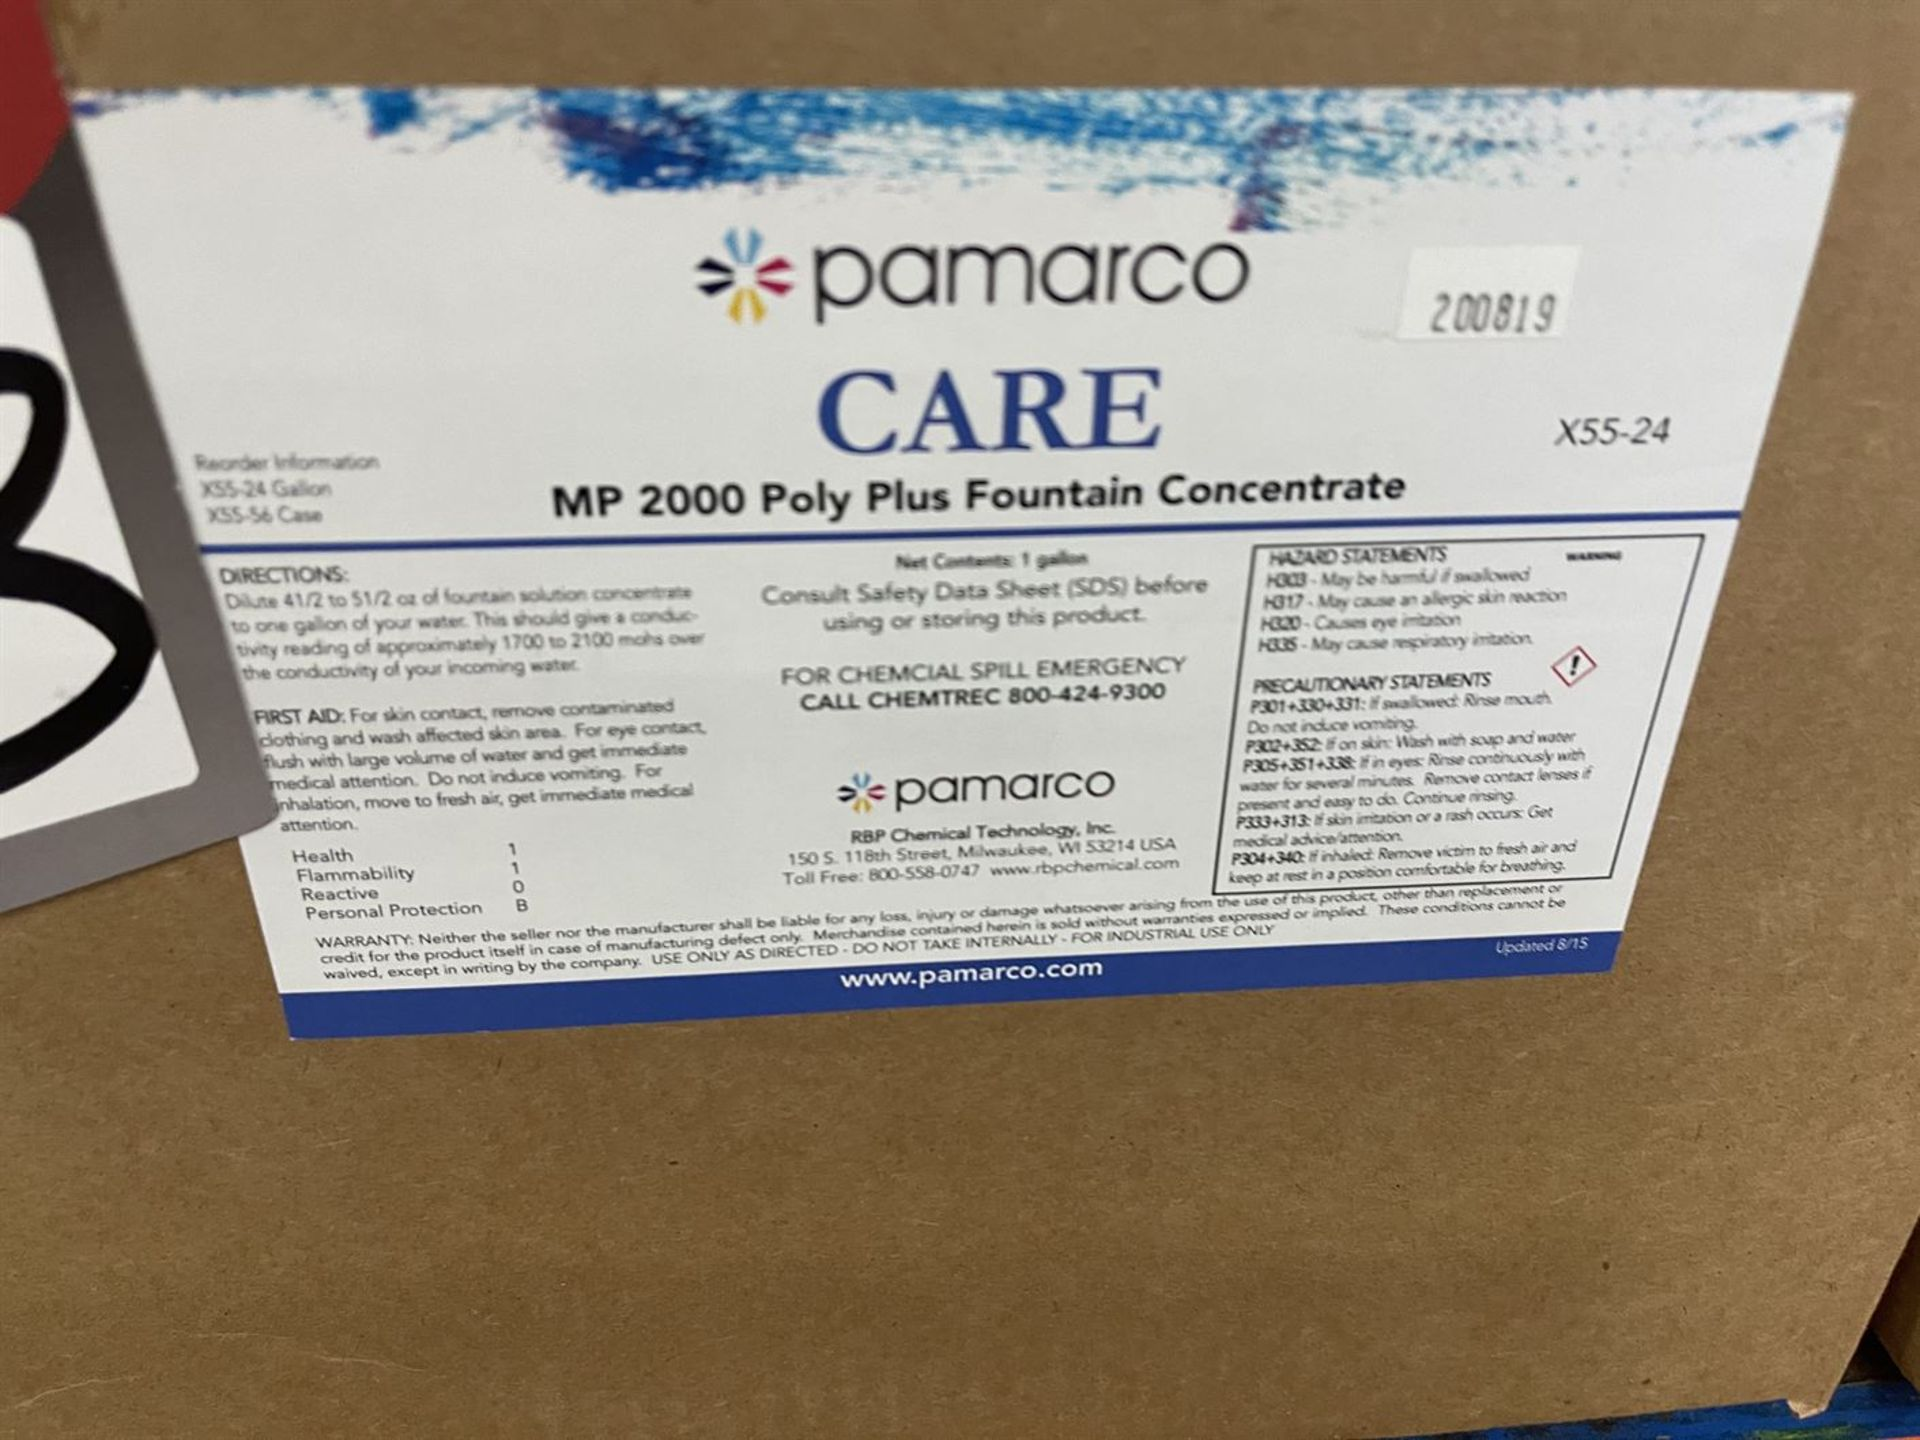 Lot of Assorted Printing Chemicals Including CMP Syn-Tac Pressroom Maintenance Kits, MP 2000 Poly - Image 3 of 5